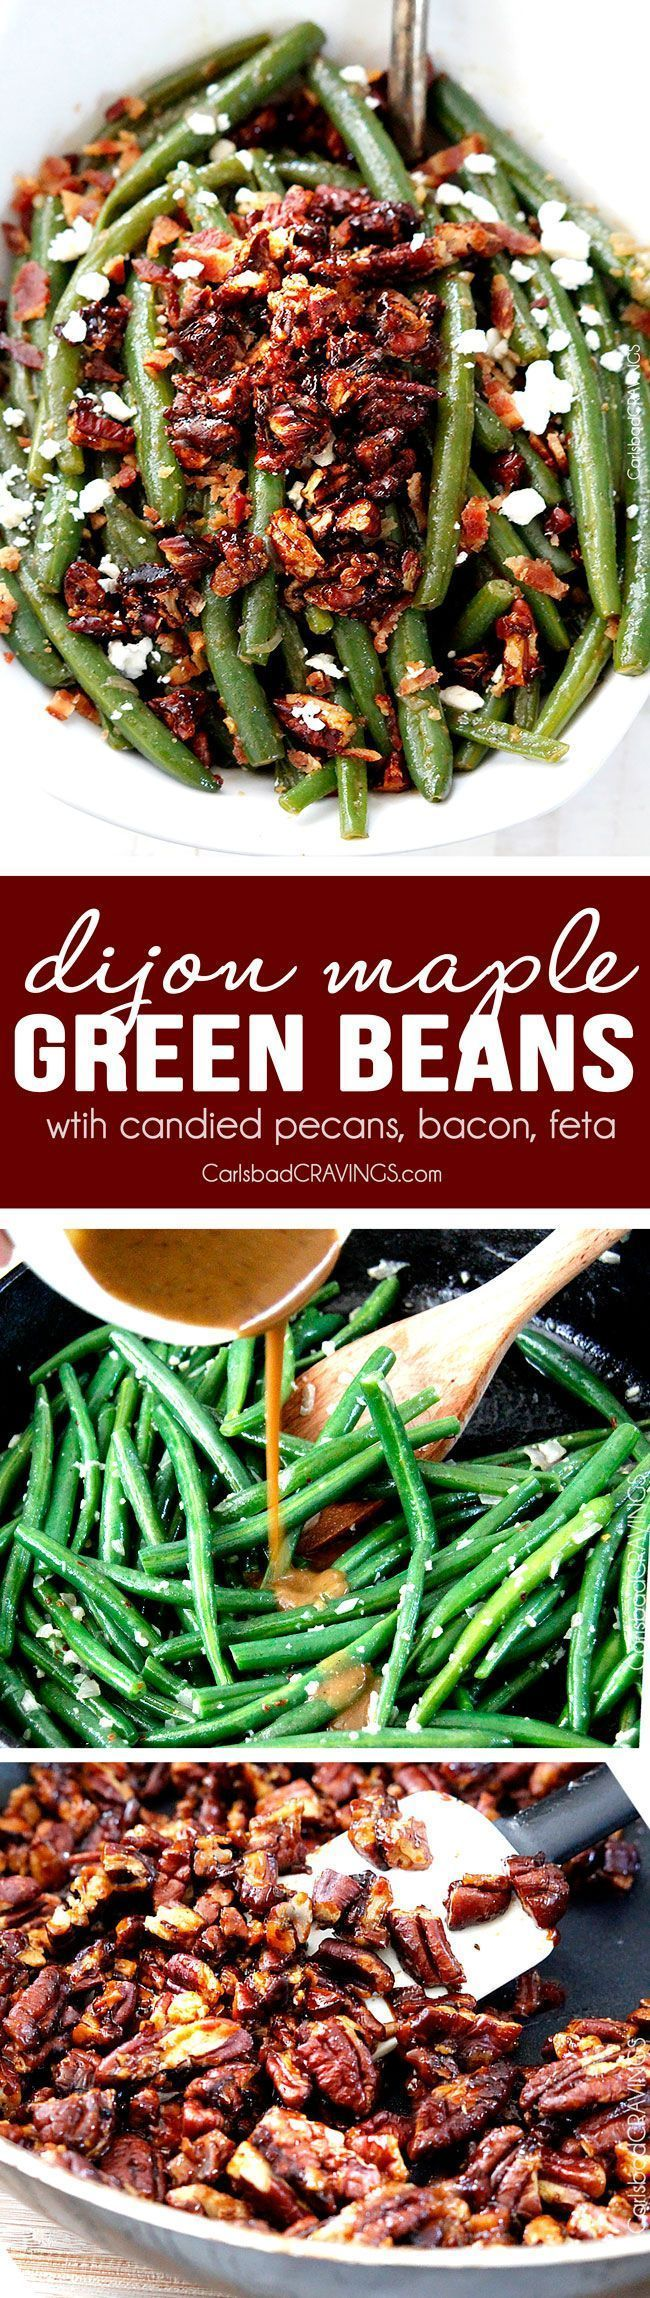 "Dijon Maple Green Beans with Caramelized Pecans, Bacon and Feta | these aren't your grandmother's green beans! Tangy, salty, sweet, crunchy, crispy, creamy AKA, ""the best green beans ever."" Not just for Thanksgiving but a year round company pleasing, delicious side. #Thanksgivingside via /carlsbadcraving/"